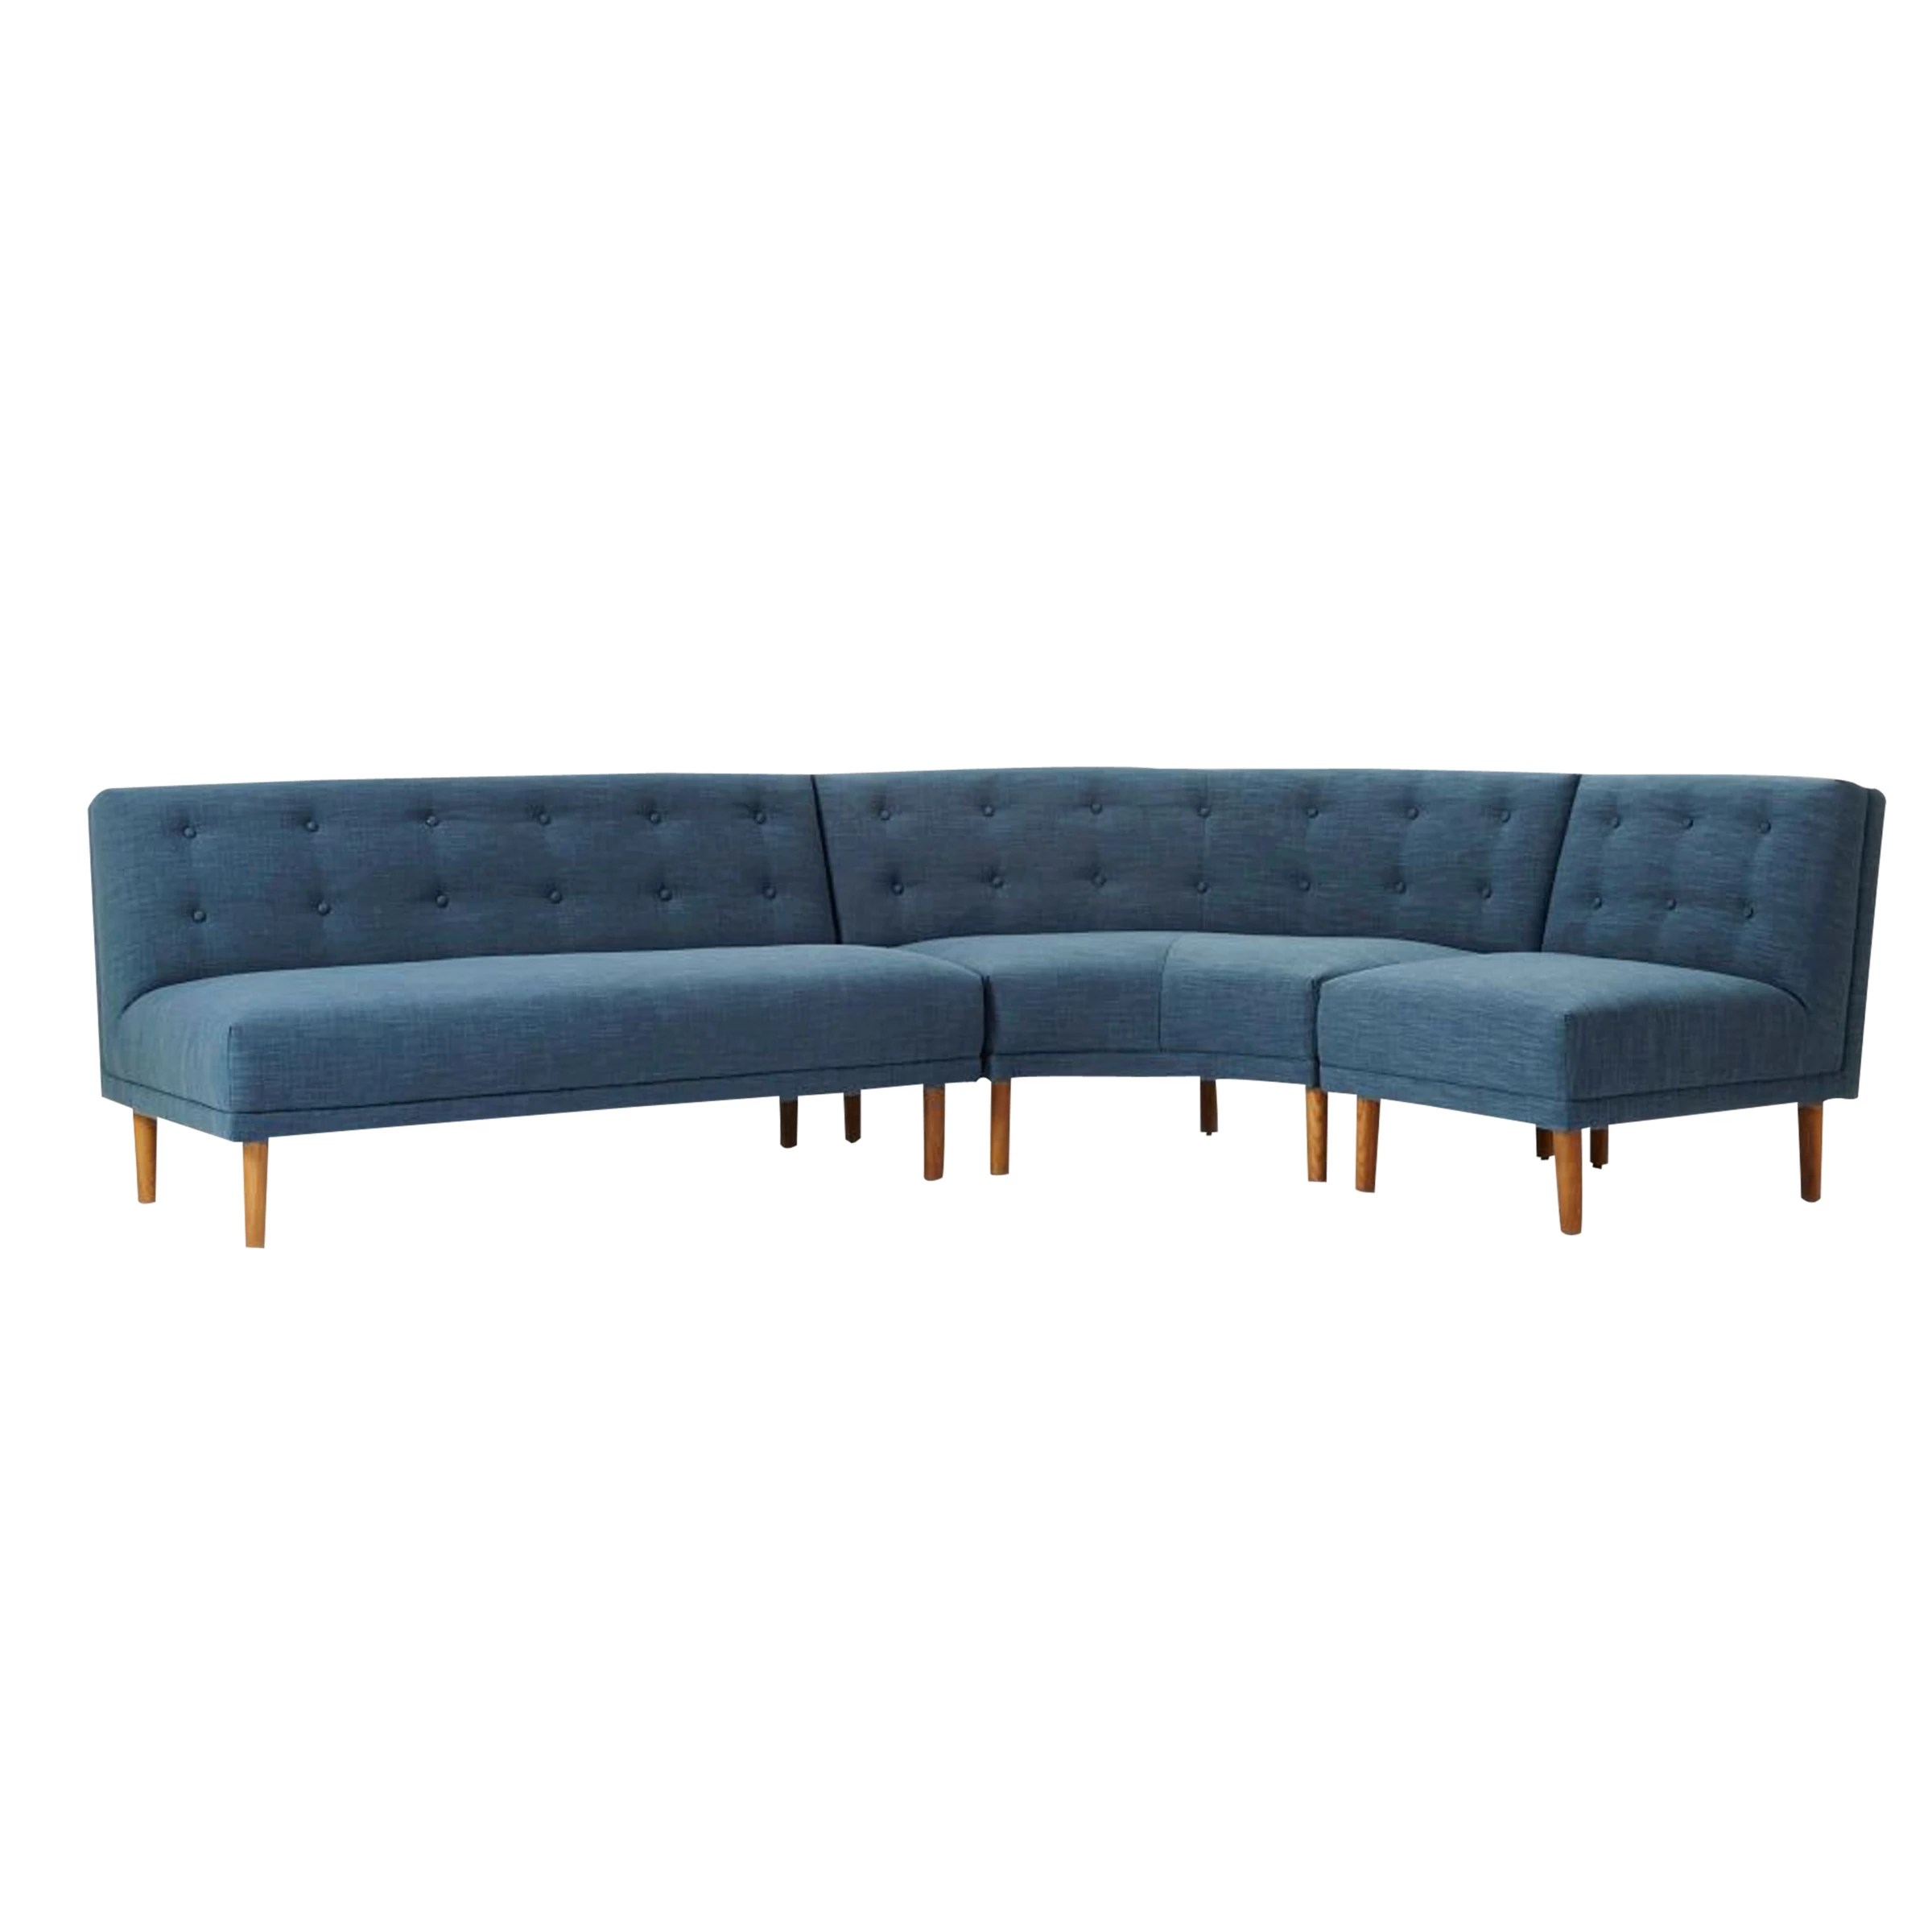 West Elm Rounded Retro Sectional Sofa Regal Blue Pecan Linen Weave At John Lewis Partners